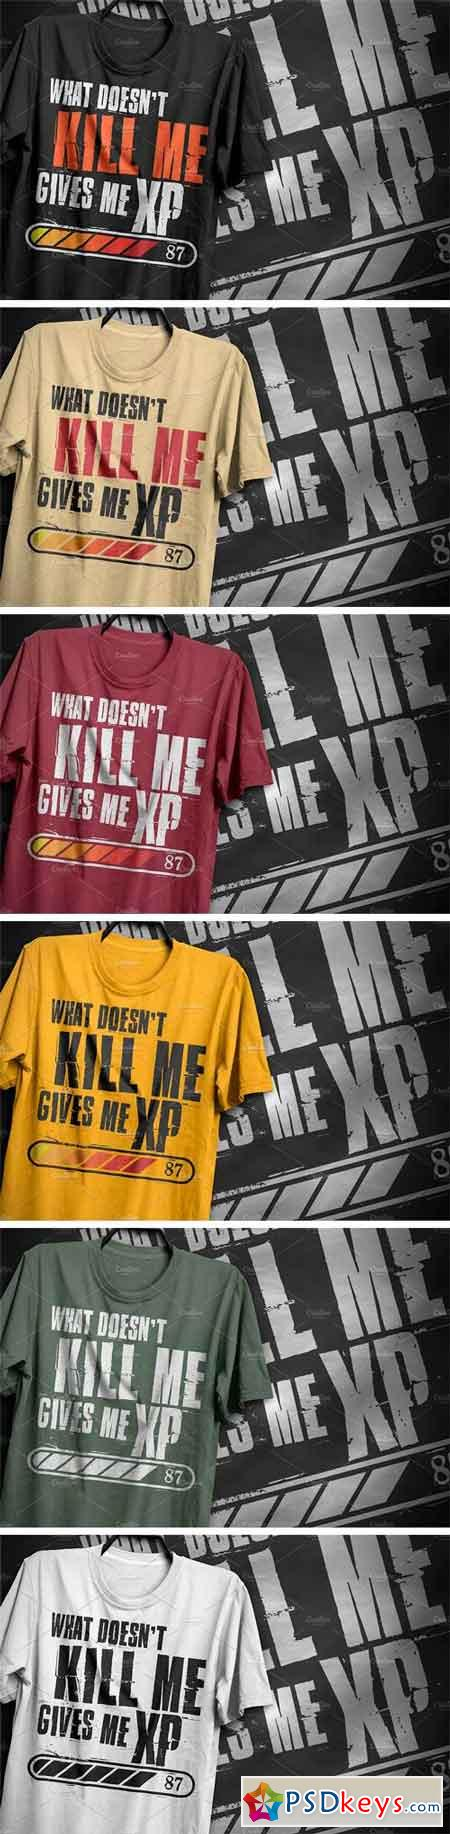 What Doesn't Kill Me. T-Shirt Design 2182351